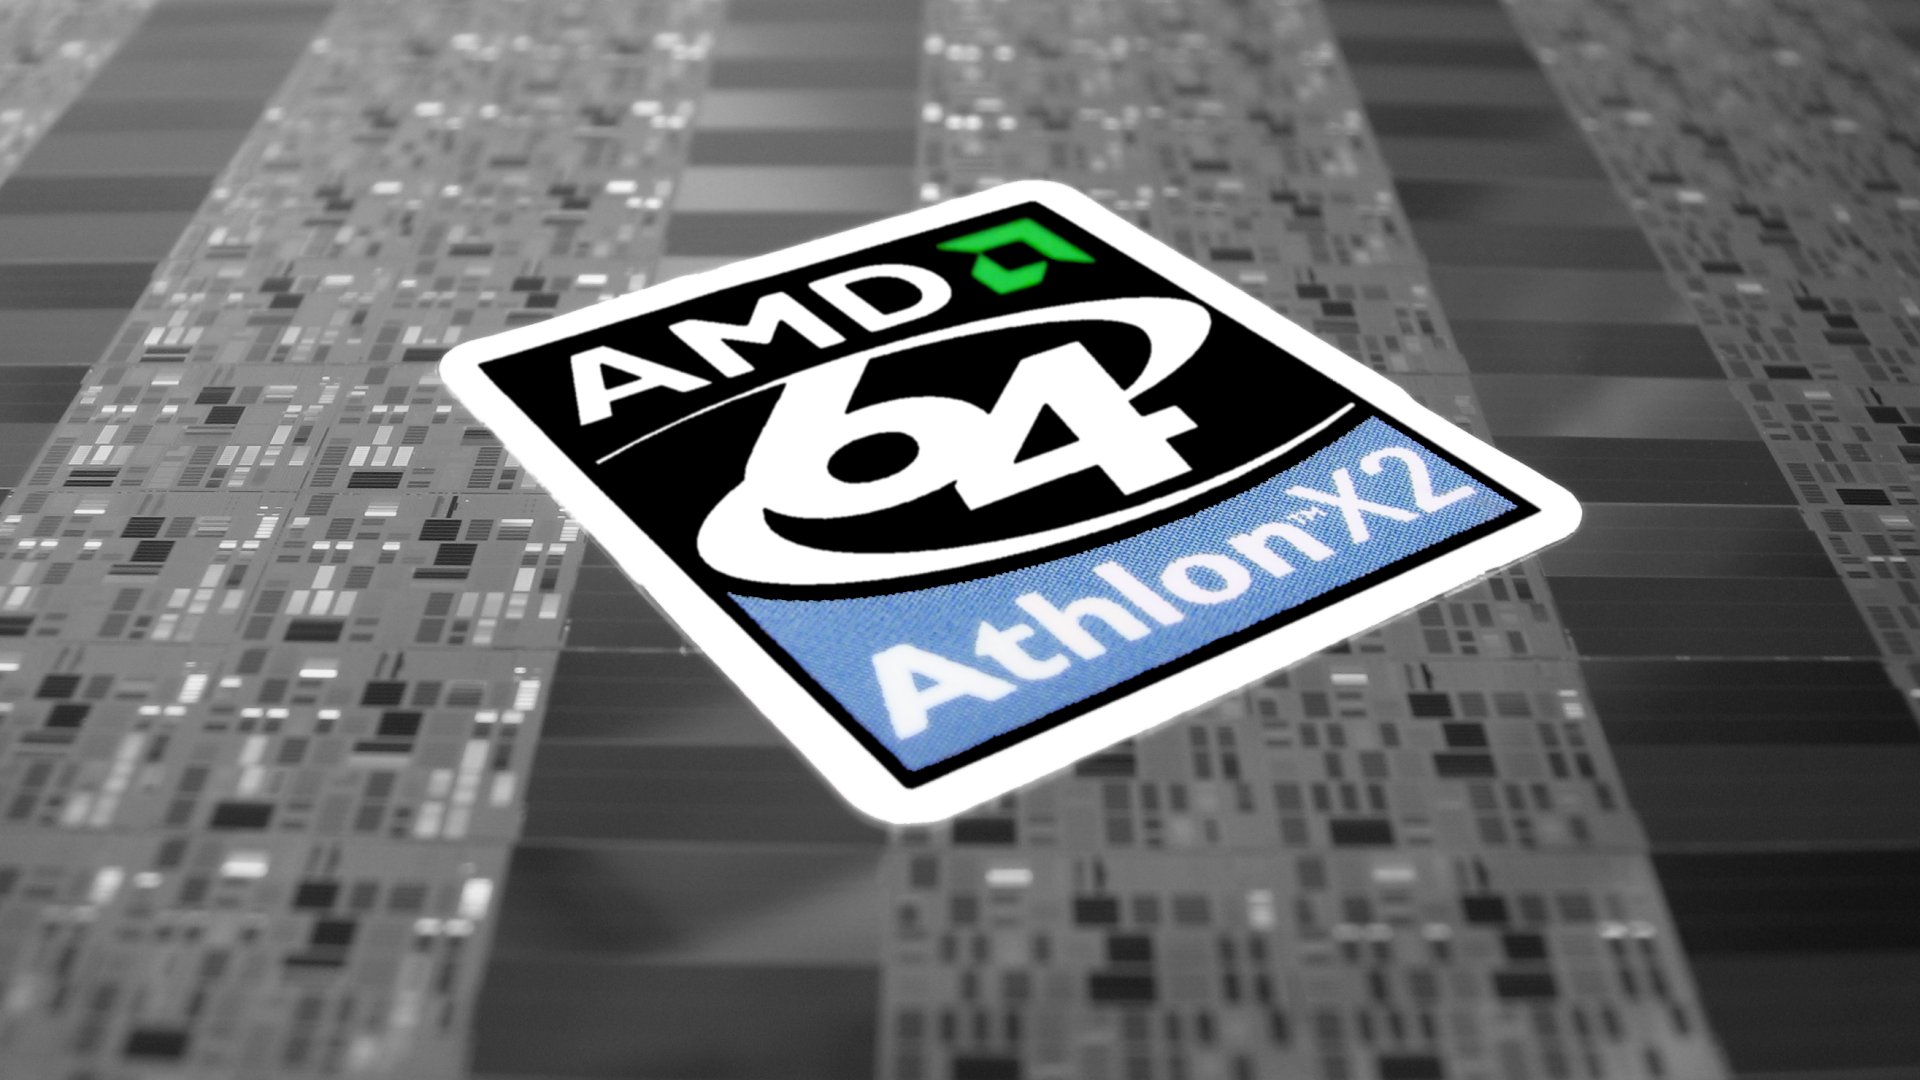 amd64 x2 wallpaper i - photo #16